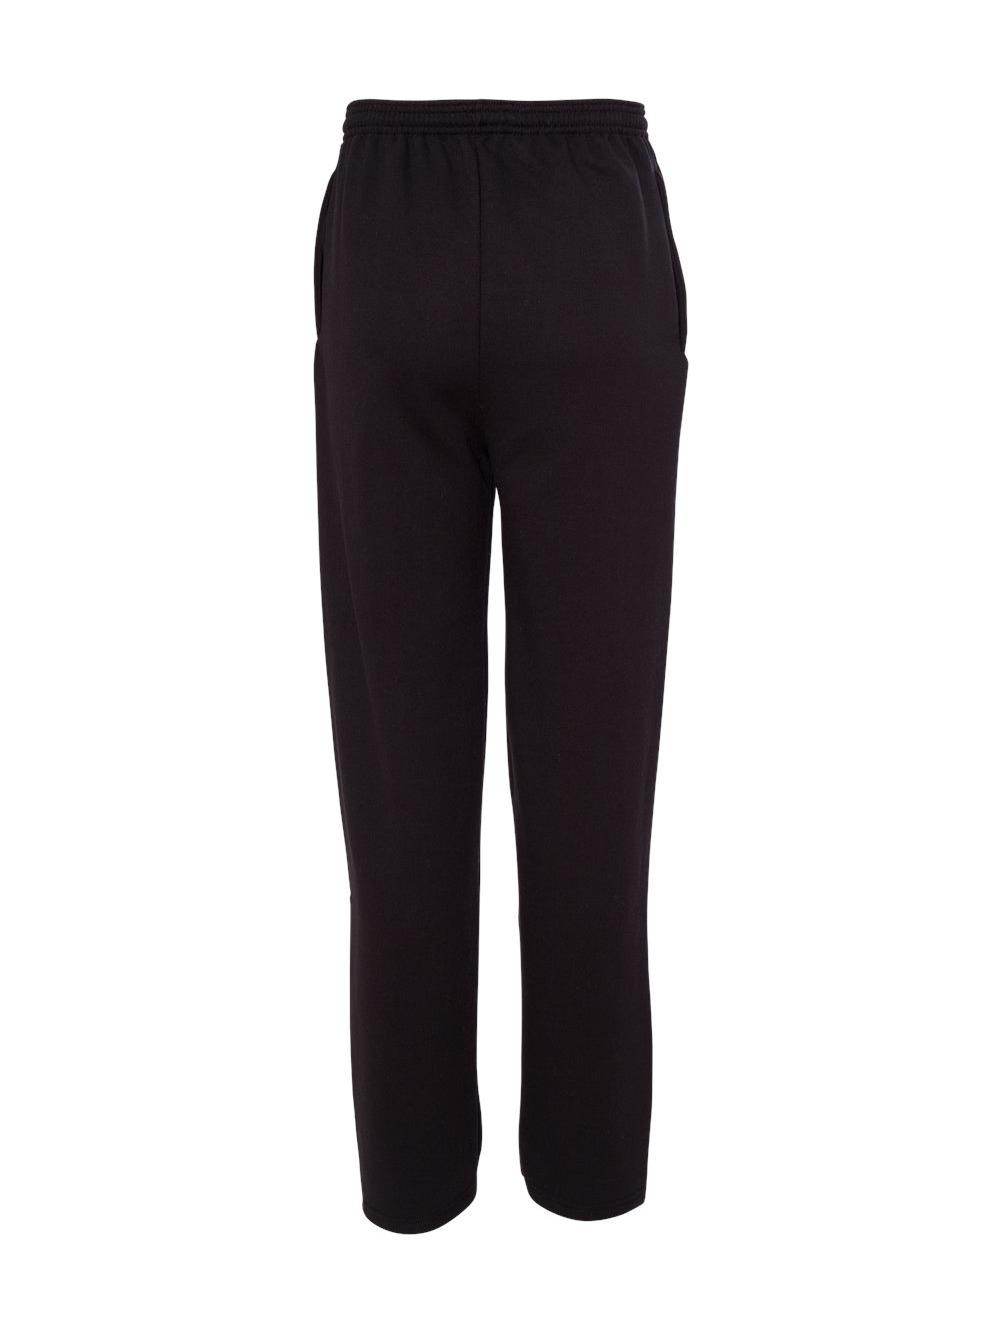 Rather valuable black open bottom mens sweat pants accept. The